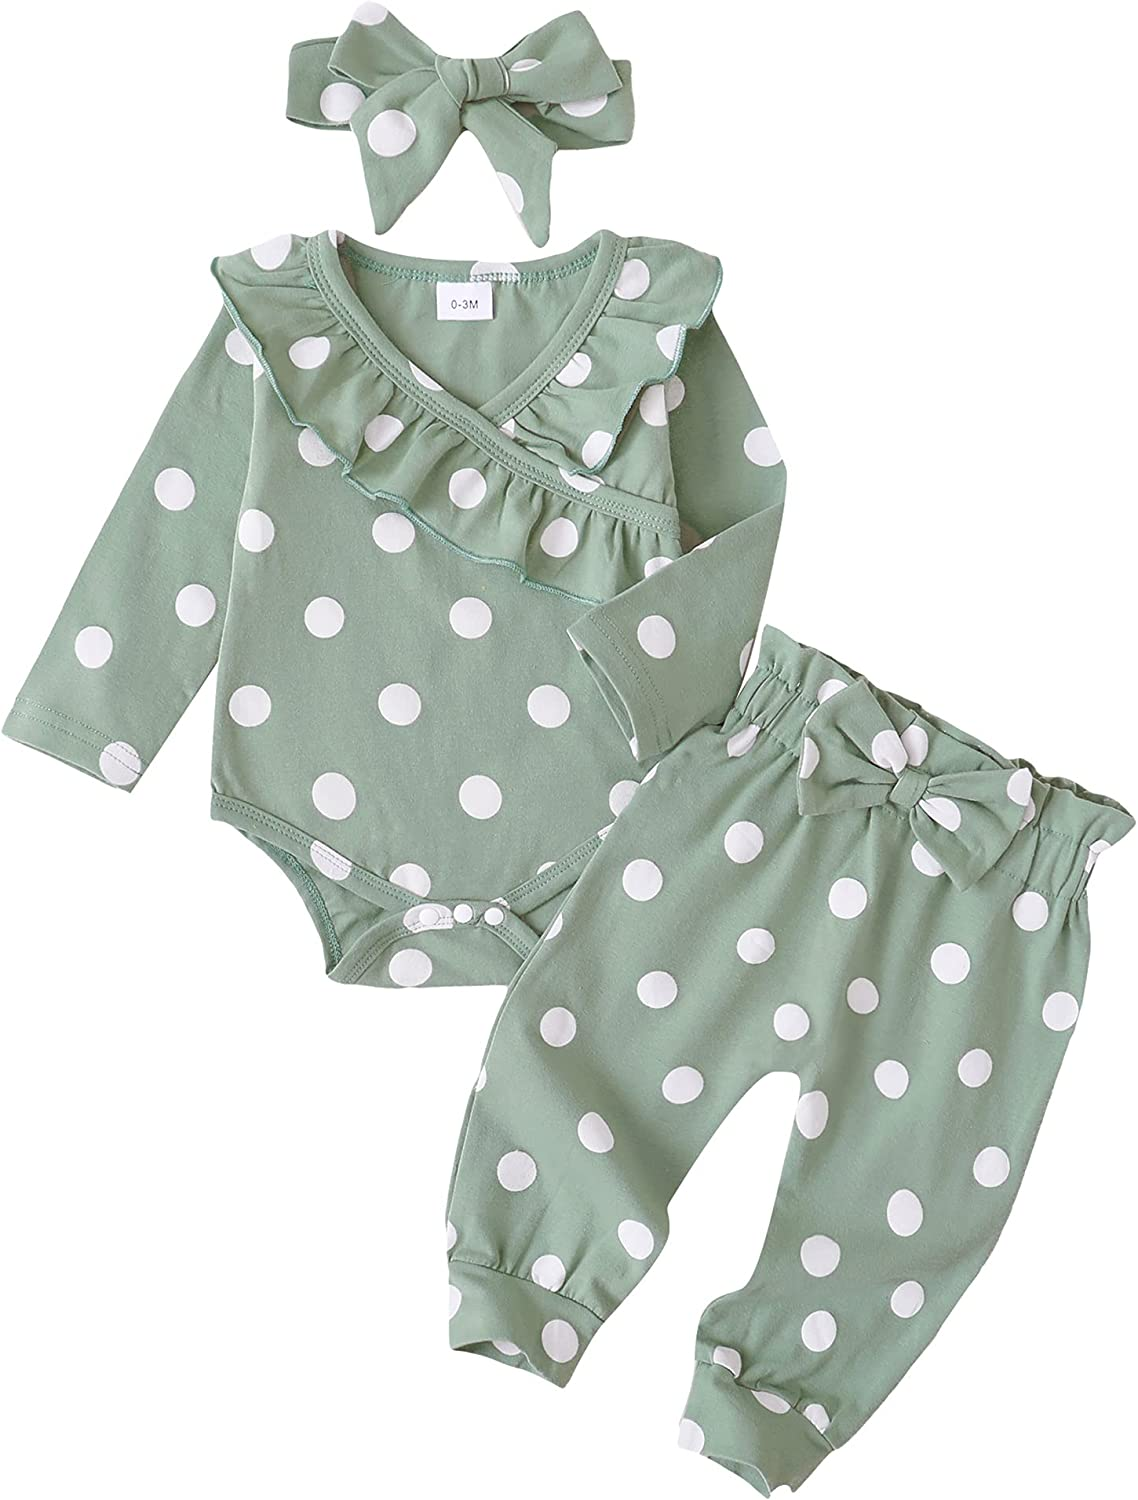 SUNNY PIGGY Newborn Baby Girl Clothes Long Sleeve Romper Infant Girls' Clothing Cotton Pants Set Outfits